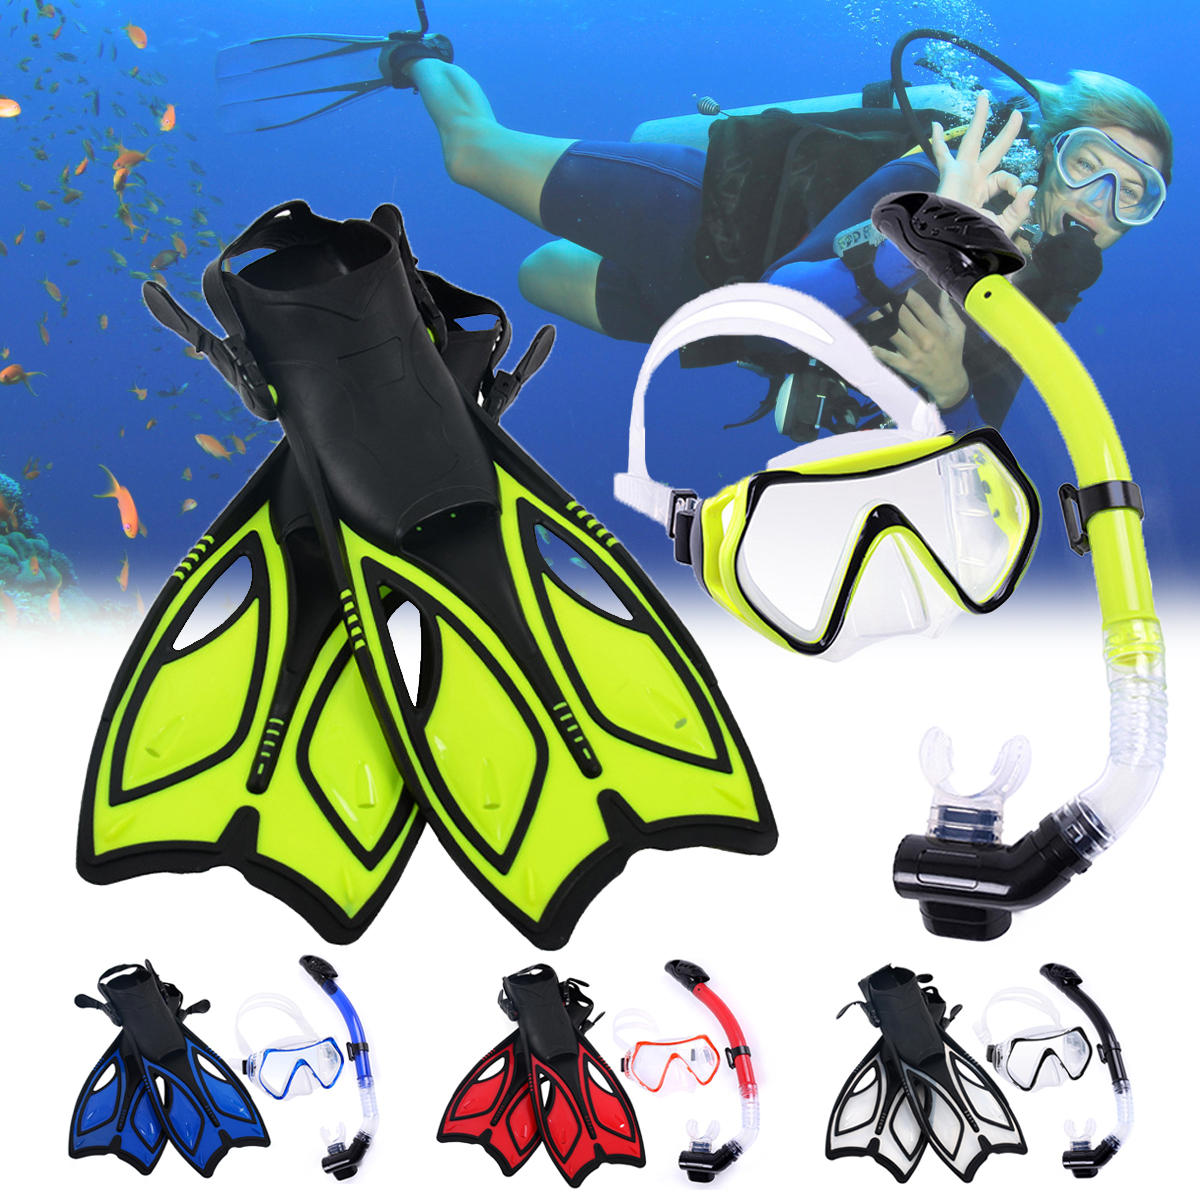 Diving Mirror Snorkeling Mask Rainbow Silicone Breathing - 1